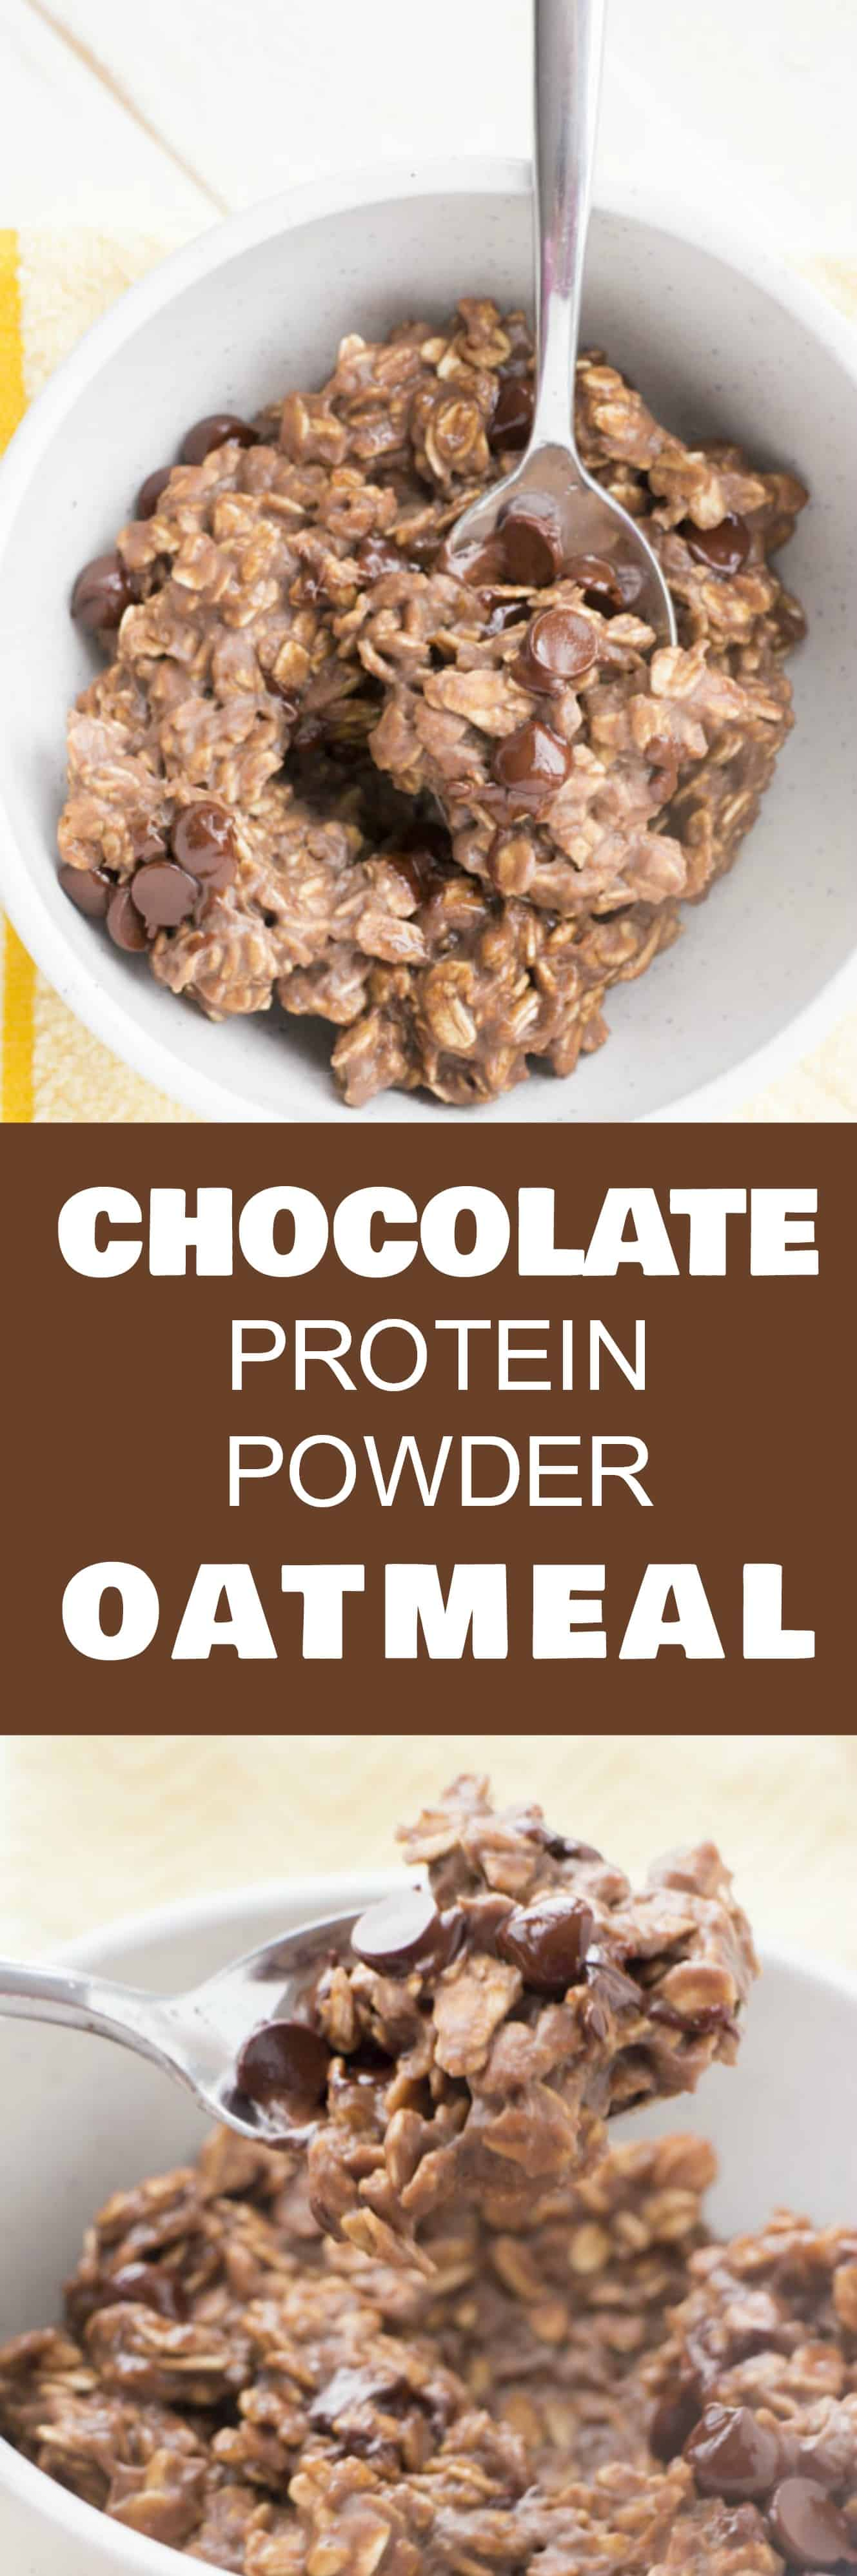 Chocolate Protein Powder Oatmeal is a healthy breakfast recipe!  It's made with chocolate protein powder and chocolate chips! Who doesn't want chocolate for breakfast?